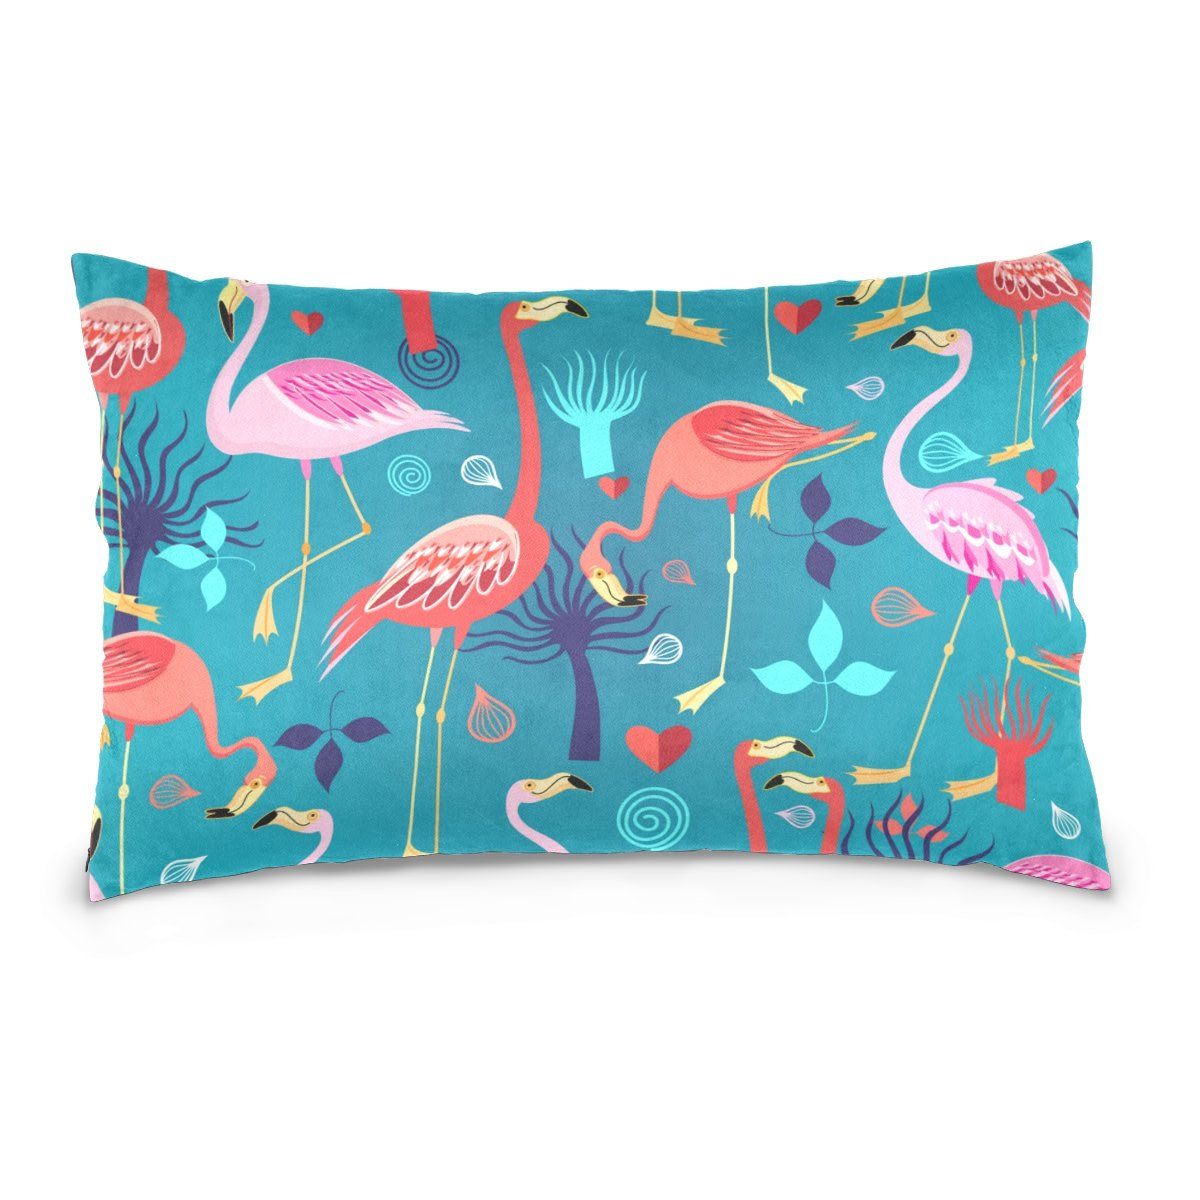 Cotton Velvet Pillowcases Flamingos Love Soft Pillow Protector with Hidden Zipper 20 x 26 Inch by My Little Nest (Image #1)